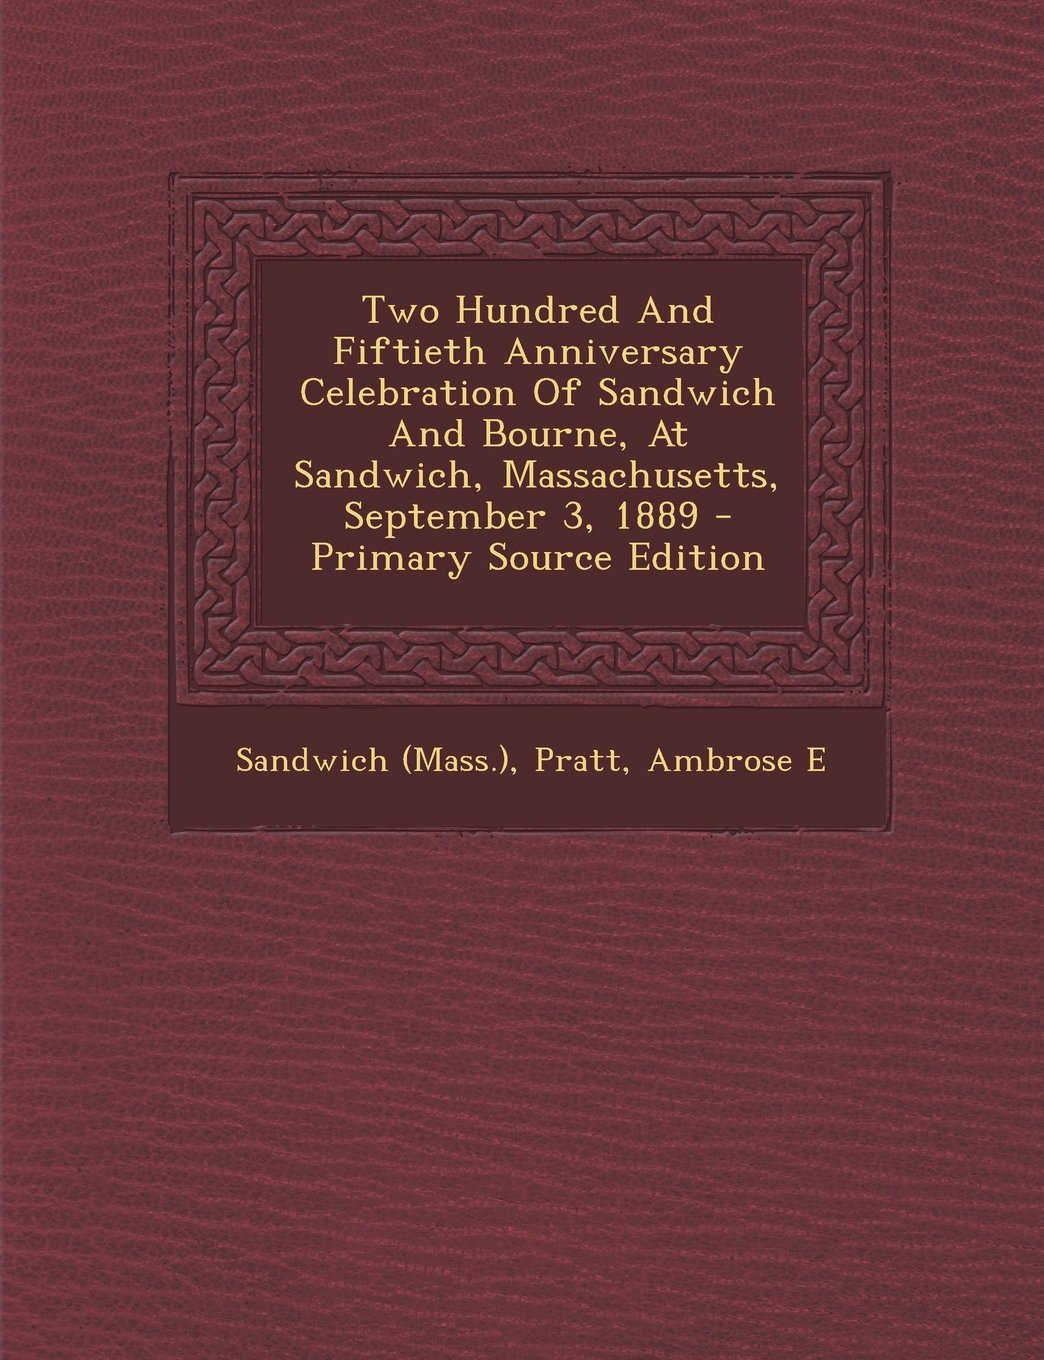 Download Two Hundred And Fiftieth Anniversary Celebration Of Sandwich And Bourne, At Sandwich, Massachusetts, September 3, 1889 - Primary Source Edition ebook